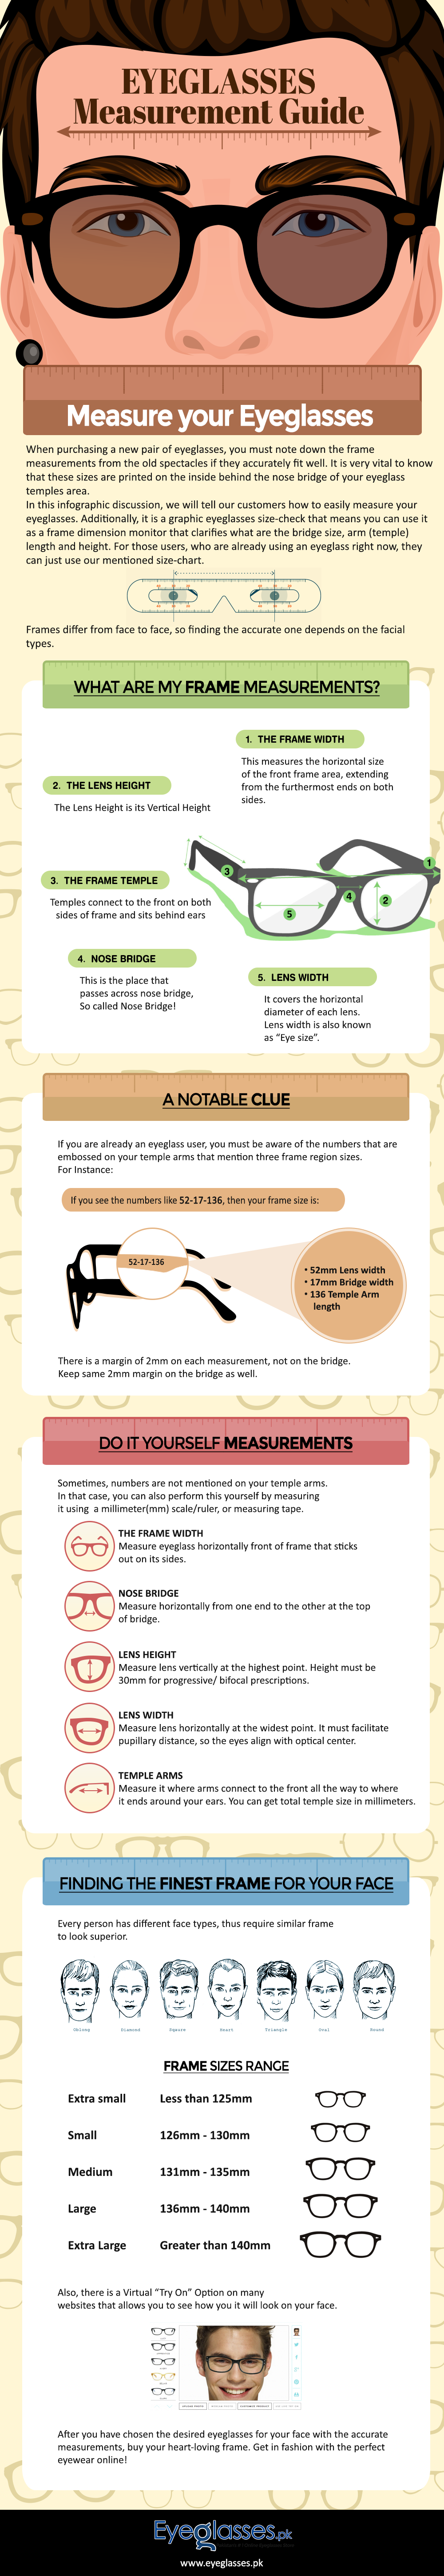 Eyeglasses Measurement Guide